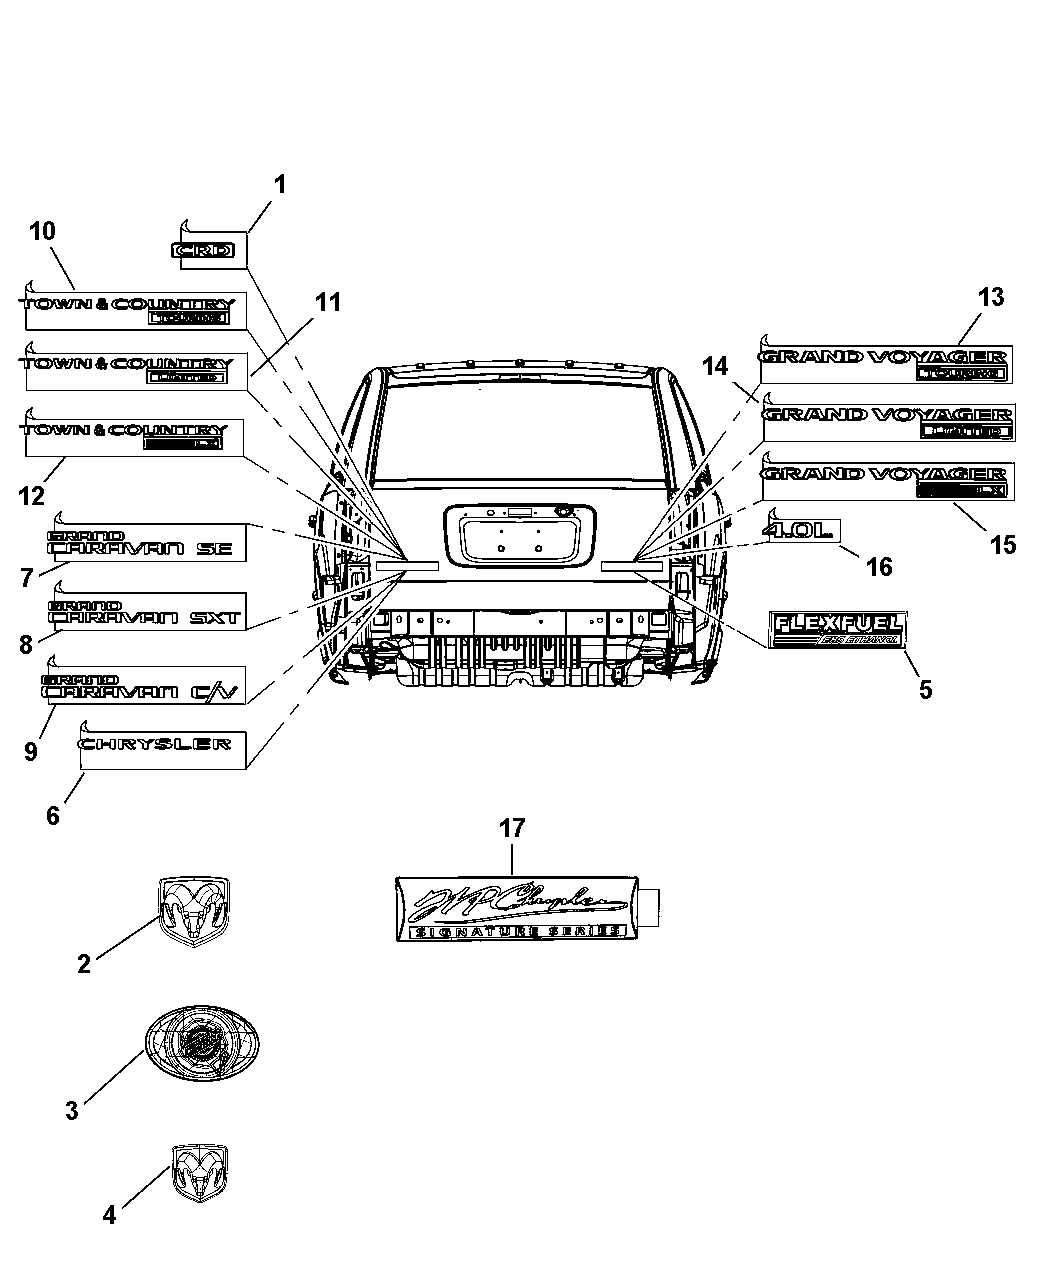 chrysler town and country parts diagram free circular arrow template 2008 automotive